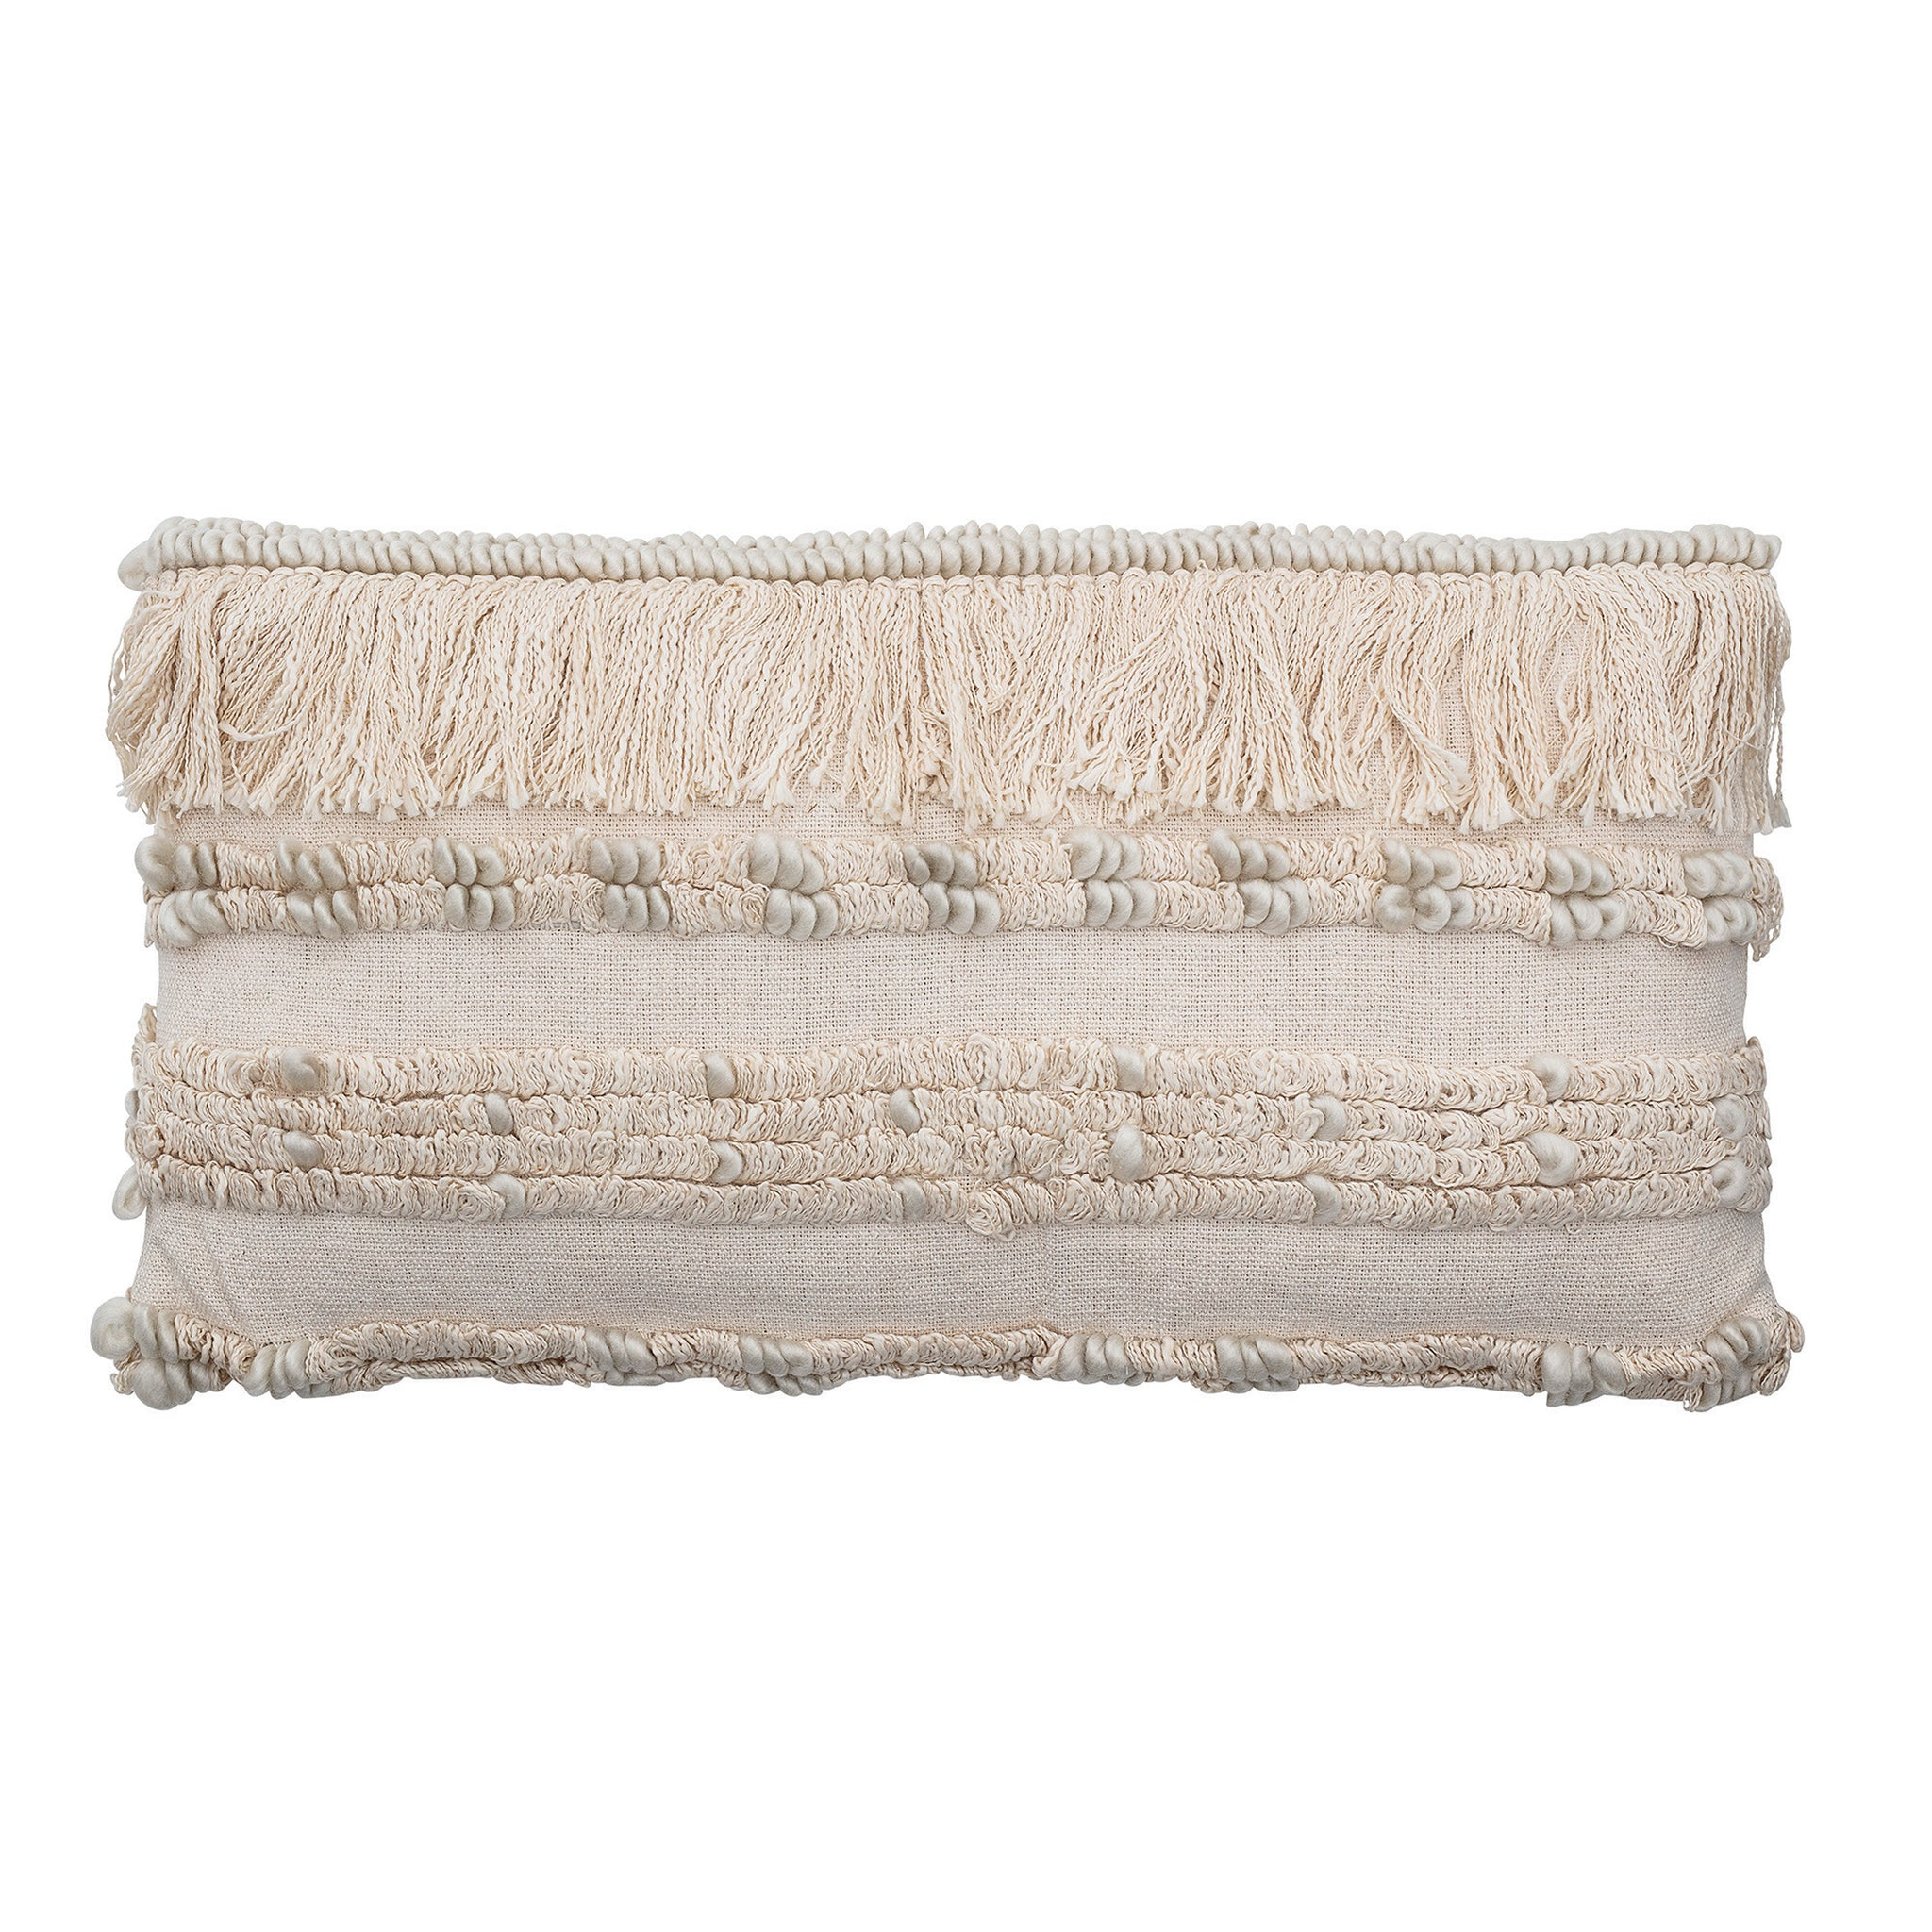 "28"" Woven Cotton & Wool Blend Lumbar Pillow with Fringe"